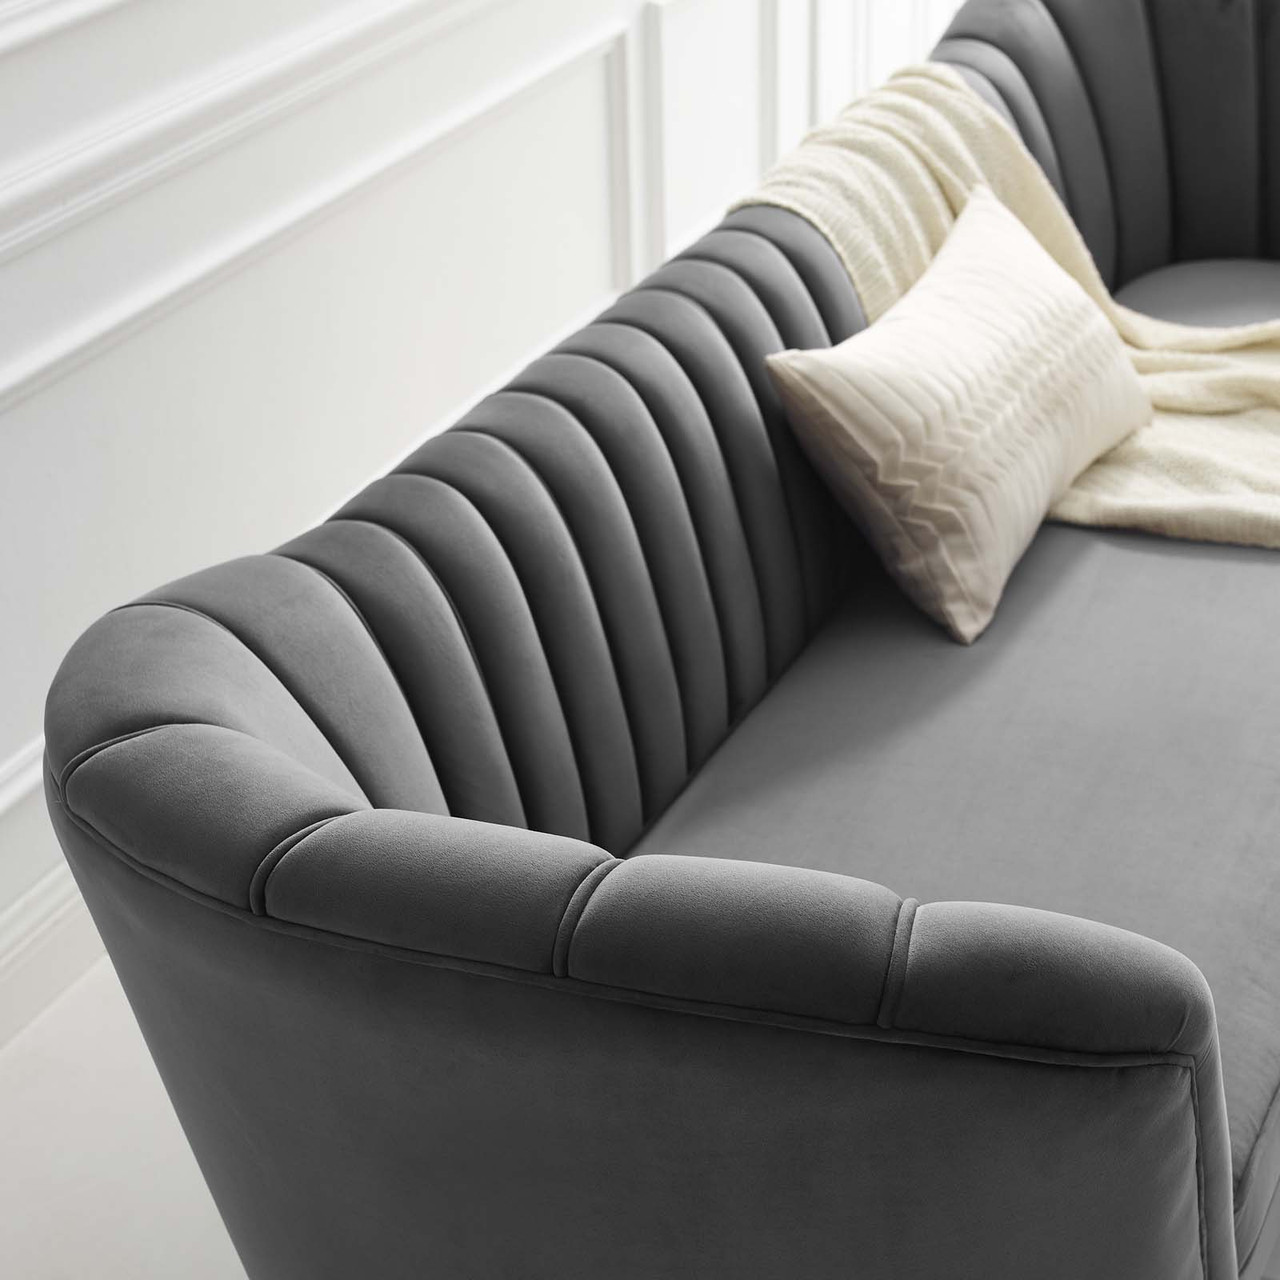 Opportunity Vertical Channel Tufted Curved Performance Velvet Sofa Gray Eei 3453 Gry Furniture East Inc